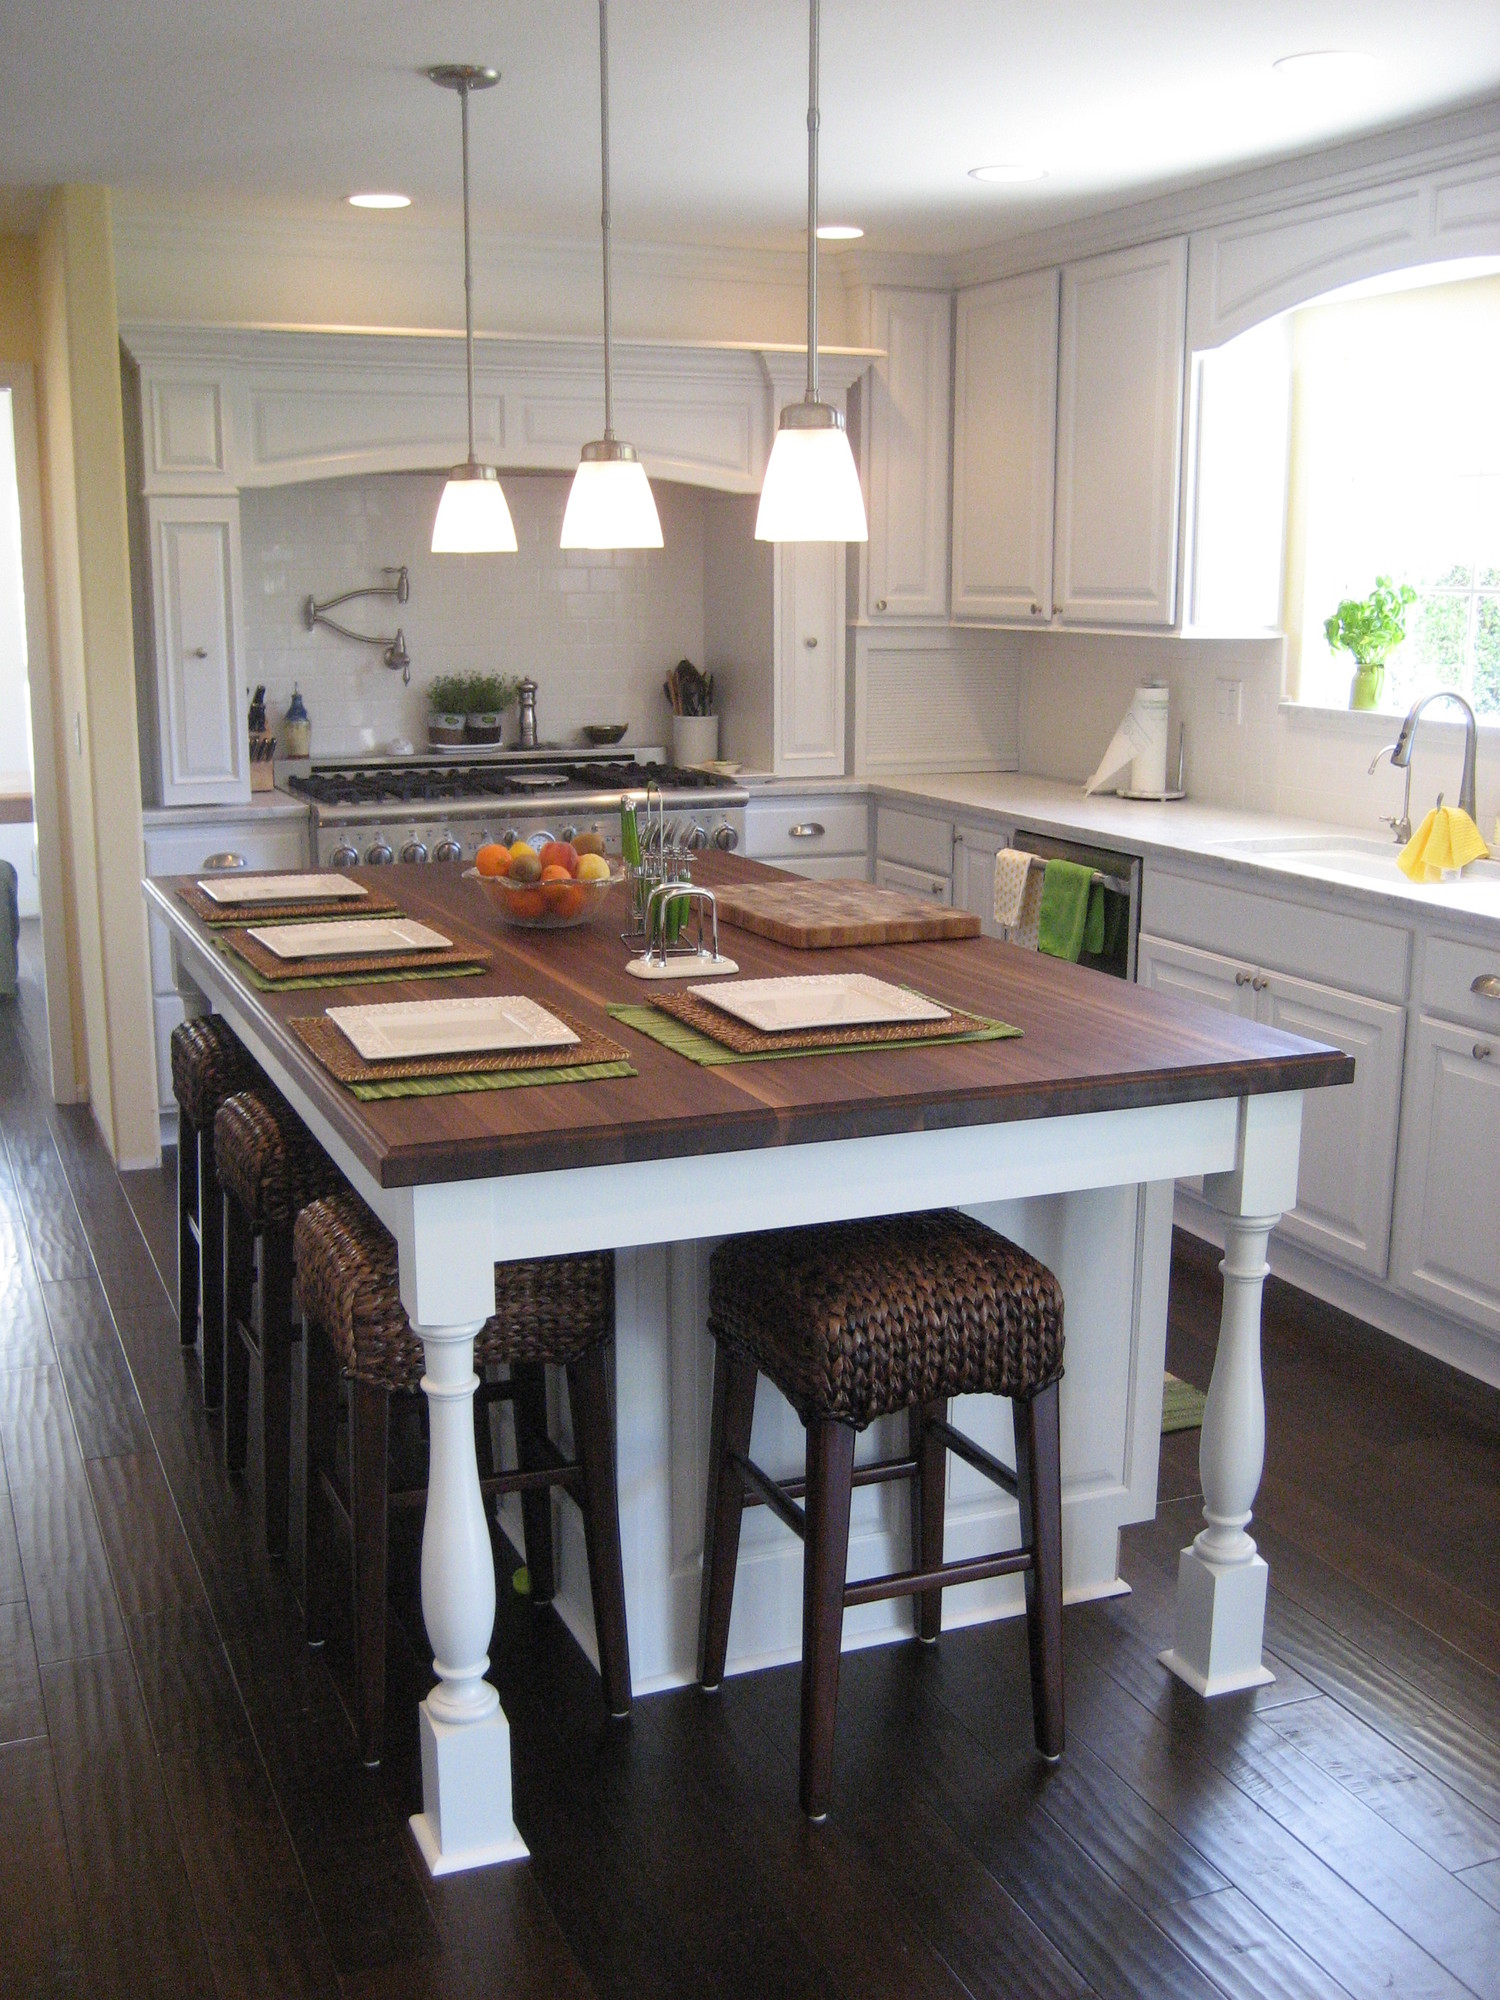 Carter-New-Life-Bath-And-Kitchen-Orcutt-1.jpg